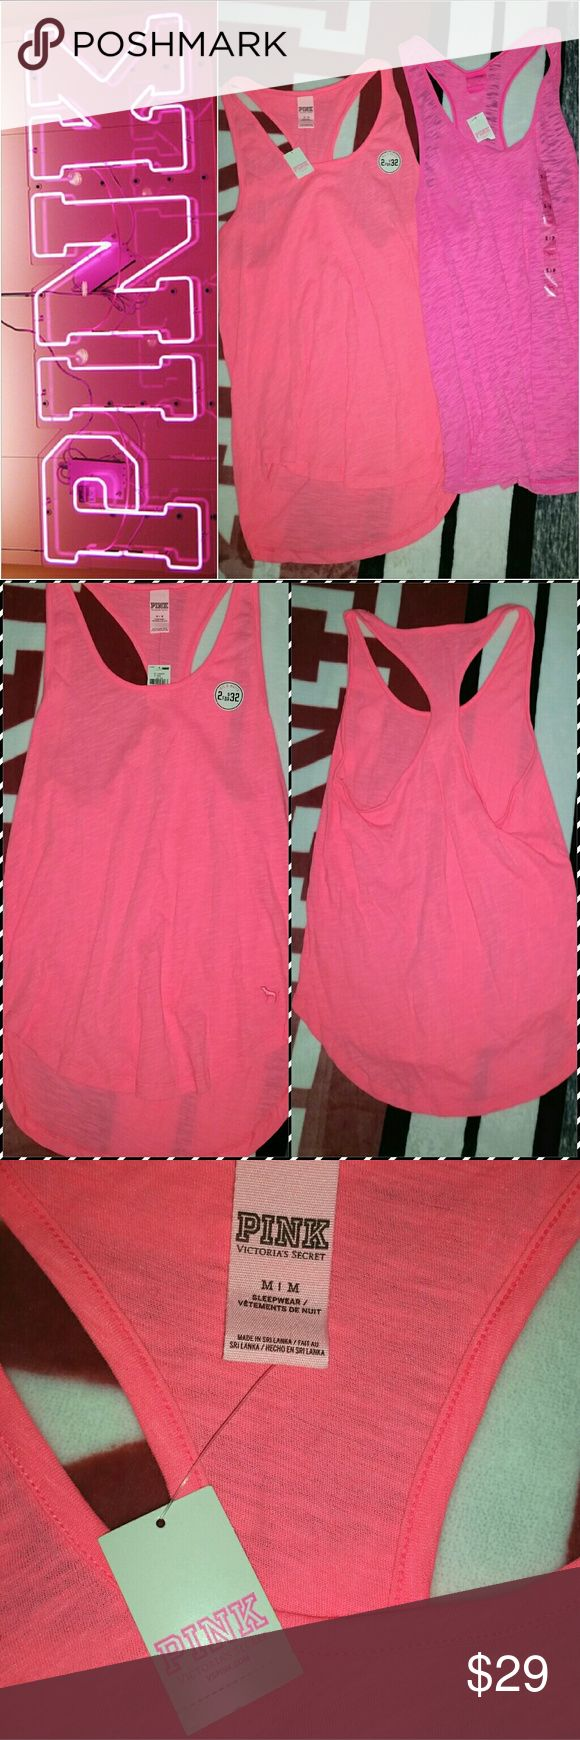 VICTORIA SECRET PINK TANK TOP NEON CORAL M NWT Nwt.. Size medium.. Listing is for one coral tank top.. No trades! PINK Victoria's Secret Tops Tank Tops